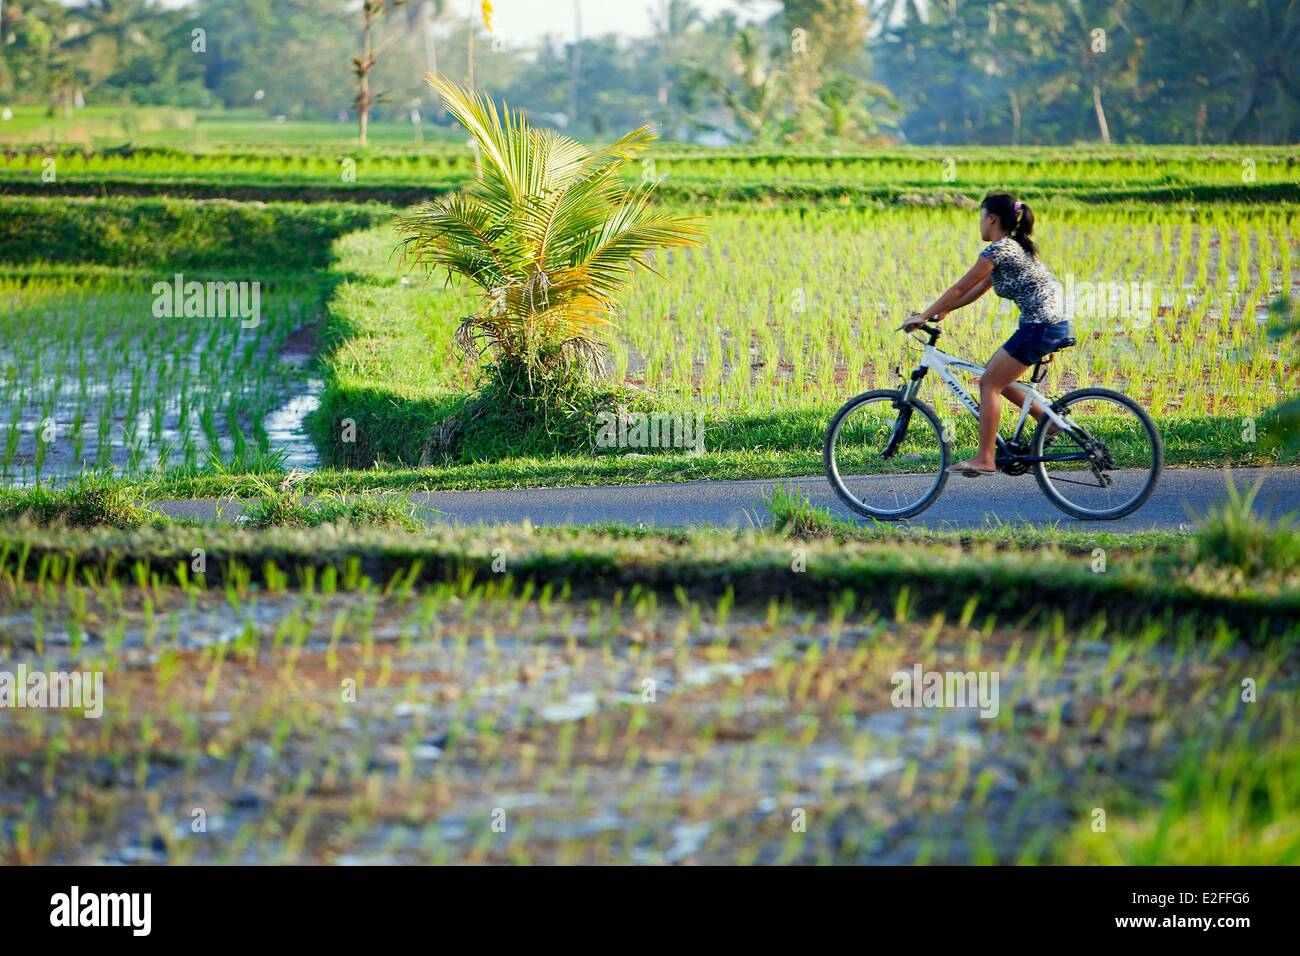 Indonesia, Bali, near Ubud, Tegalalang Stock Photo